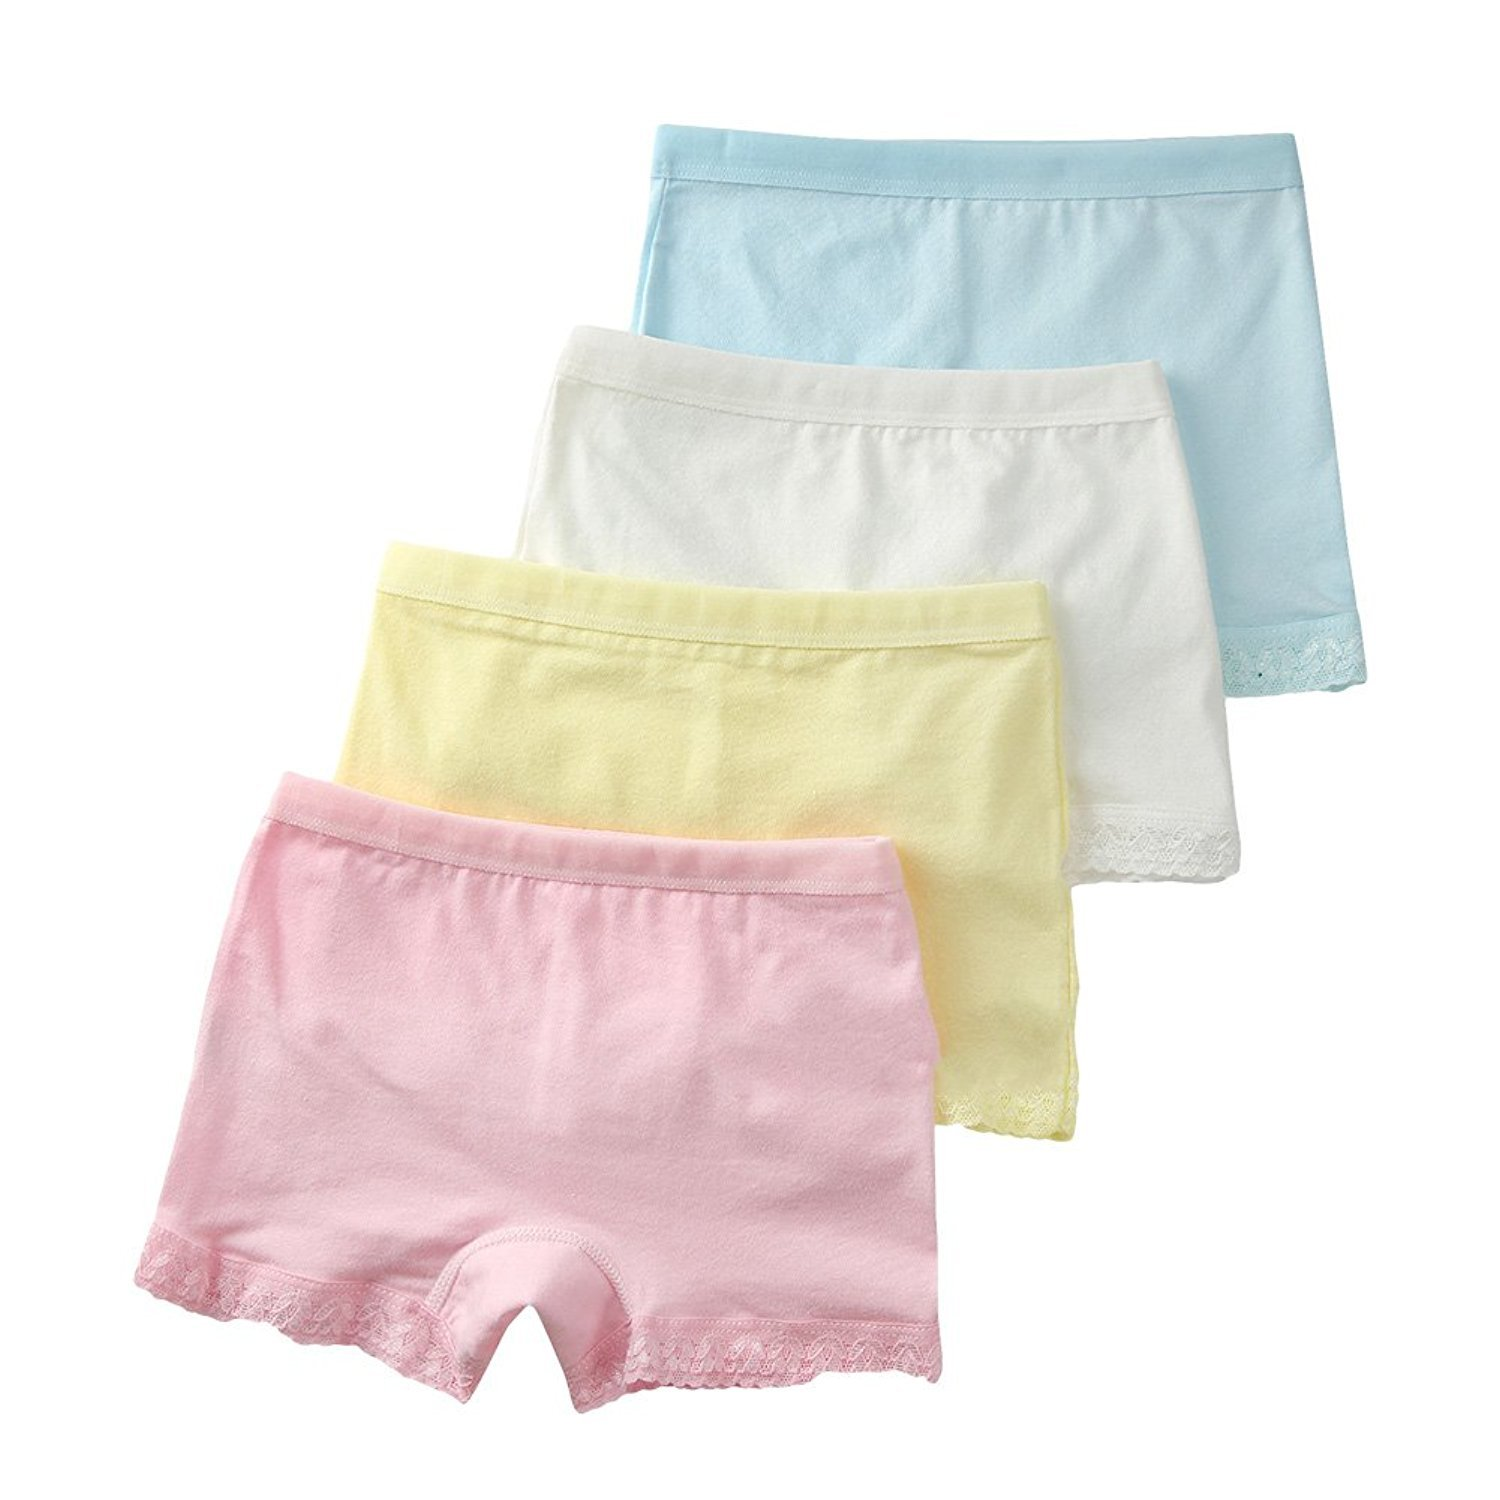 Jojobaby Baby Kids Girls' Cotton Lace Underwear Briefs 4-Pack Panties BK010-fu